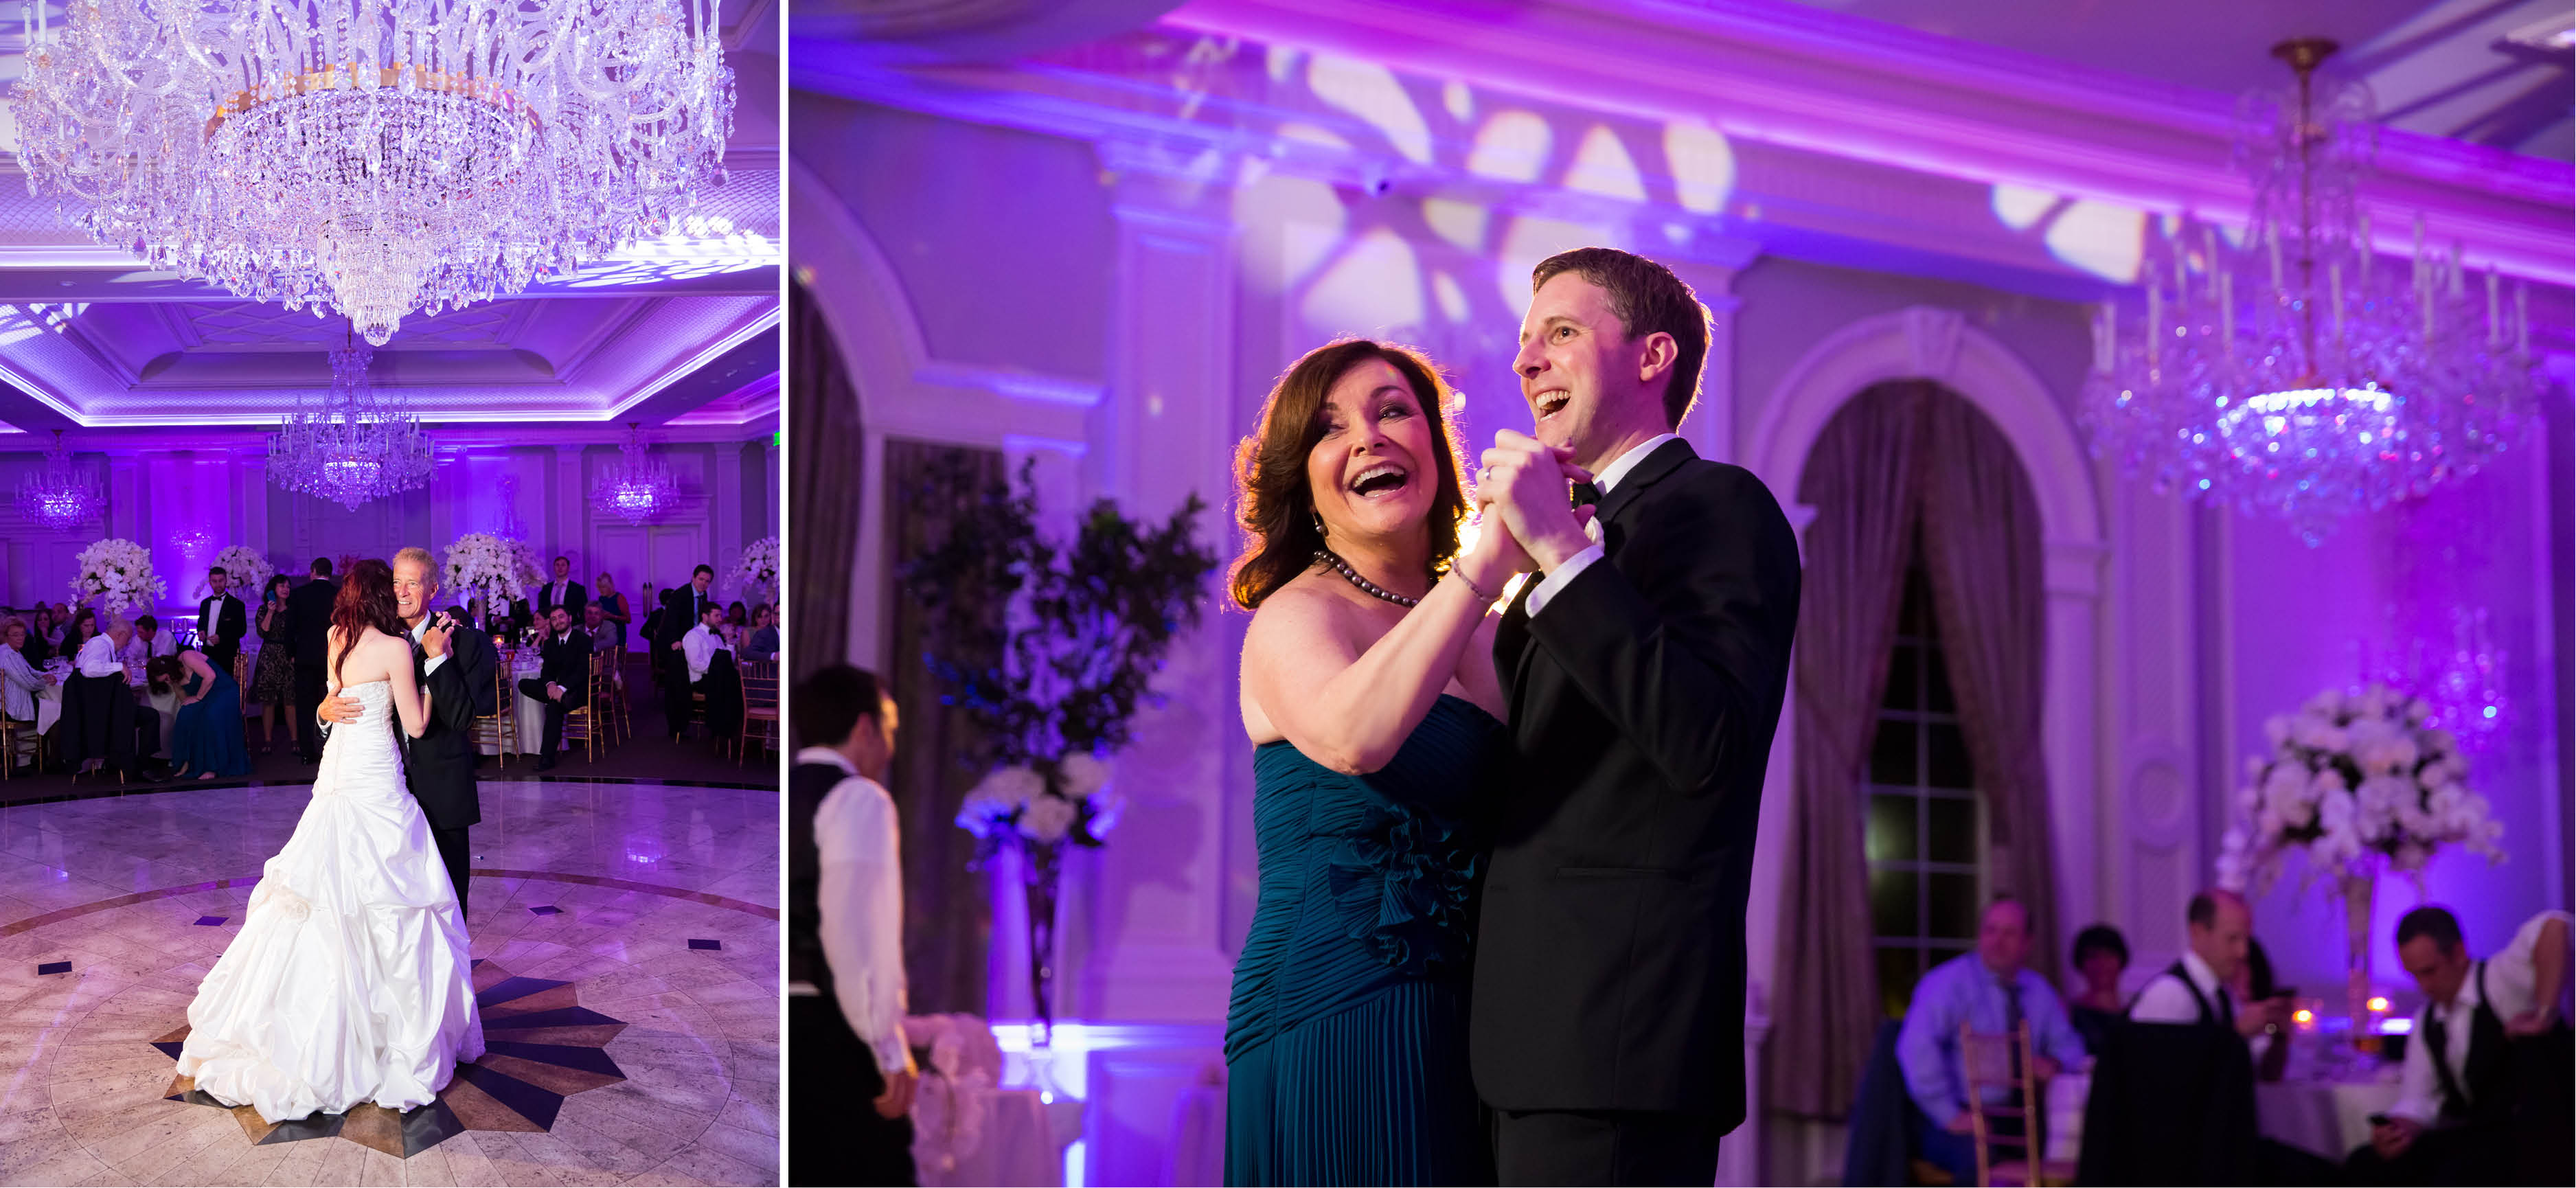 Emma_cleary_photography the Rockleigh NJ wedding24